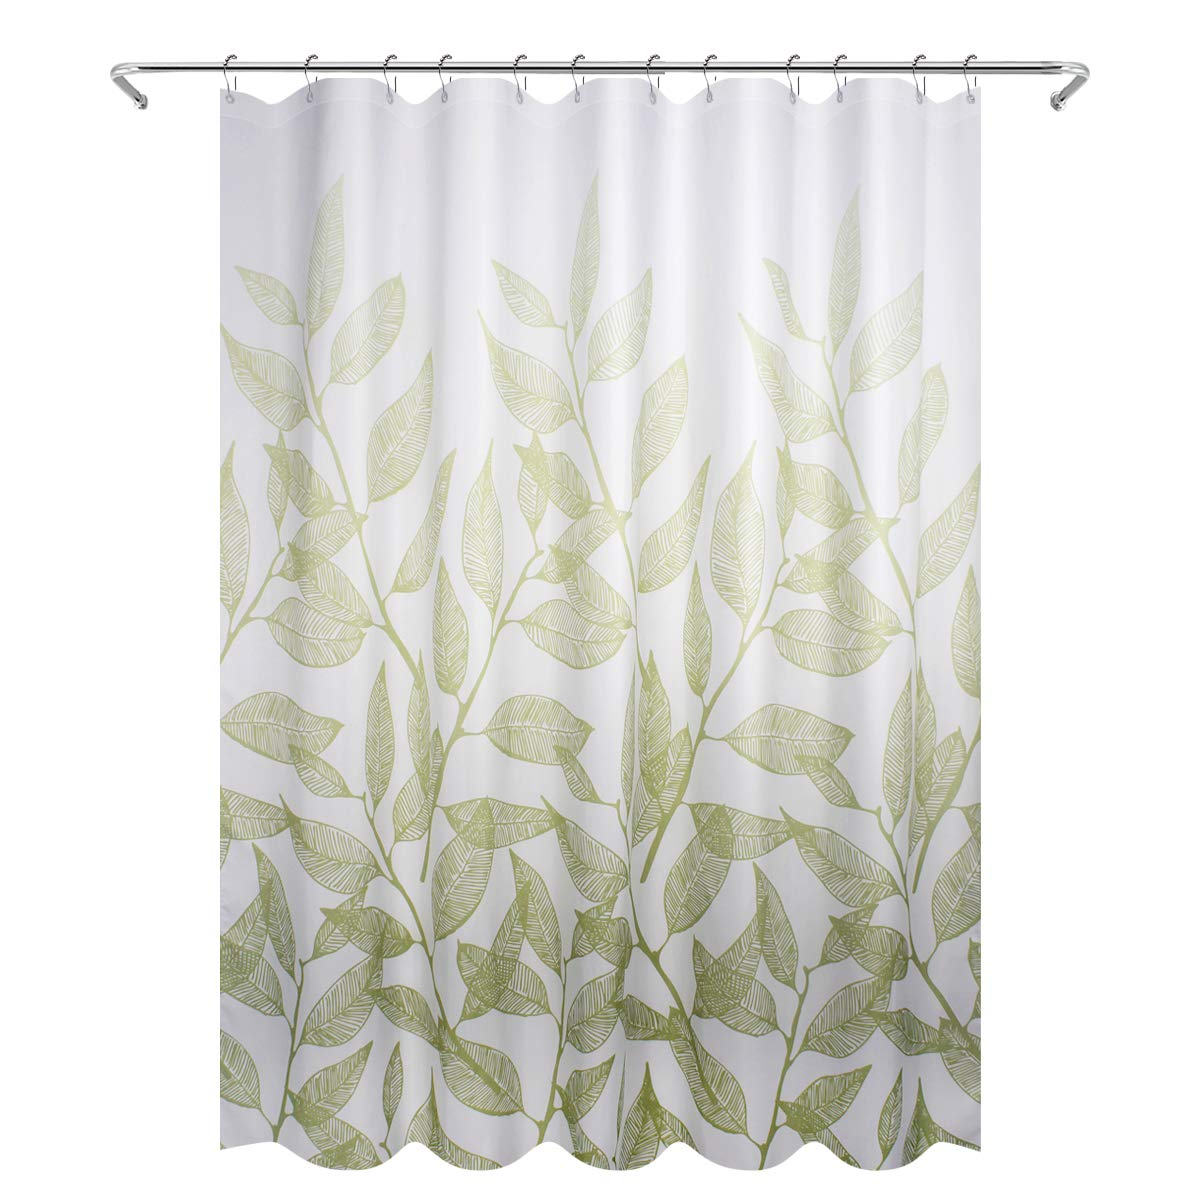 Eforgift Polyester Bathroom Shower Curtain Water Repellent Fabric Bath Curtain Elegant Spring Green Leaves with Rust-Proof Grommets, Extra Wide 72-inch by 78-inch